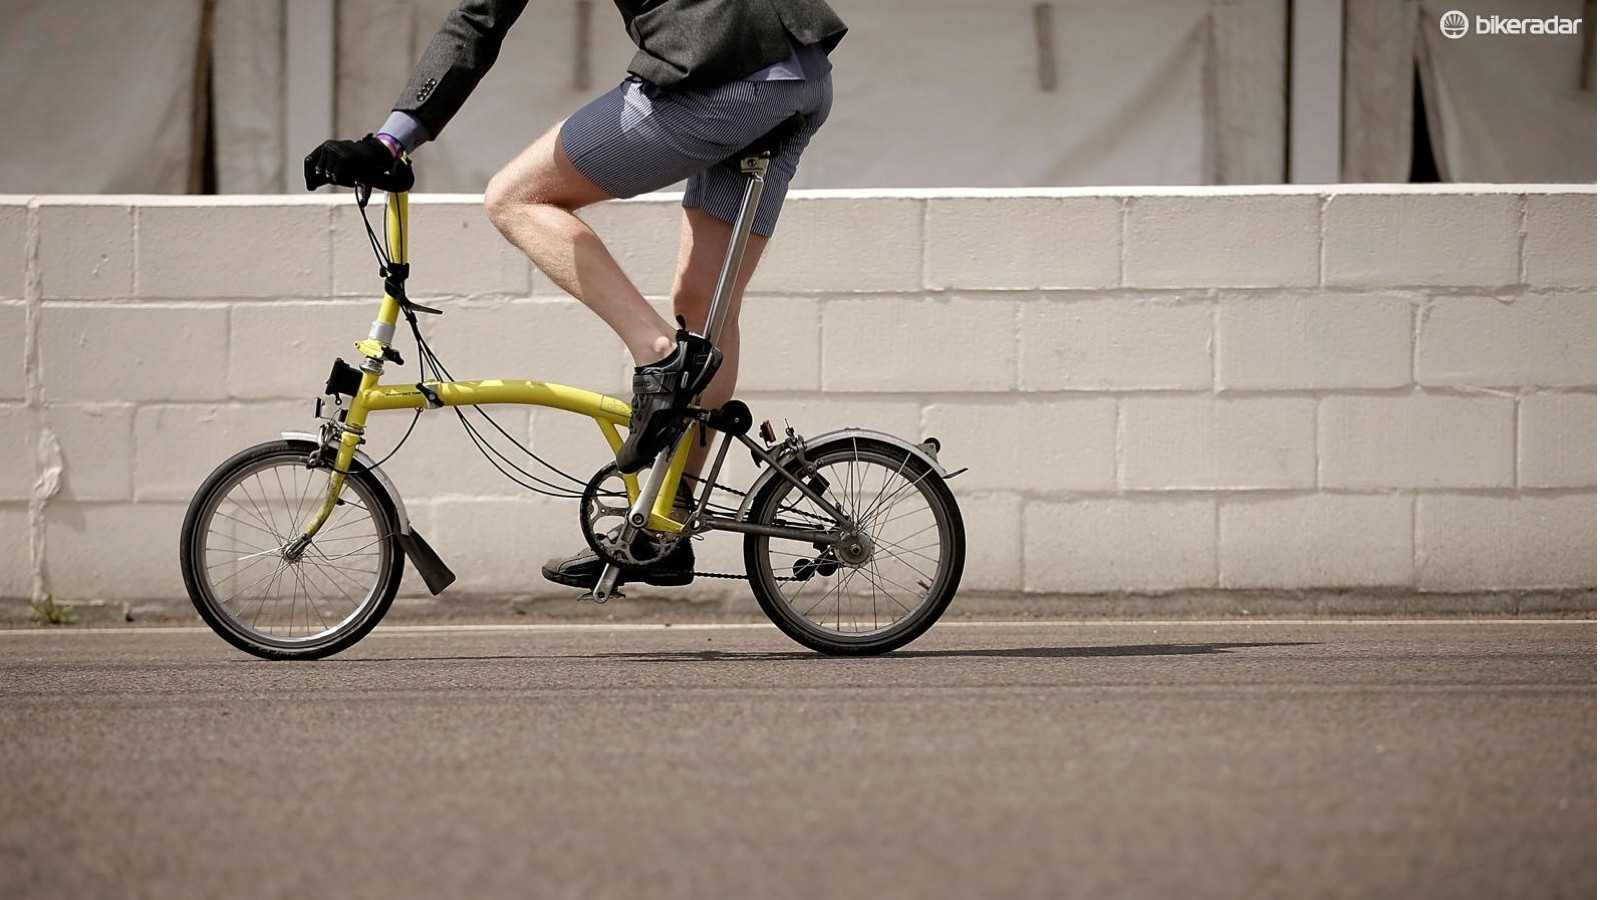 Why not extend your commute to fit in some extra training time?